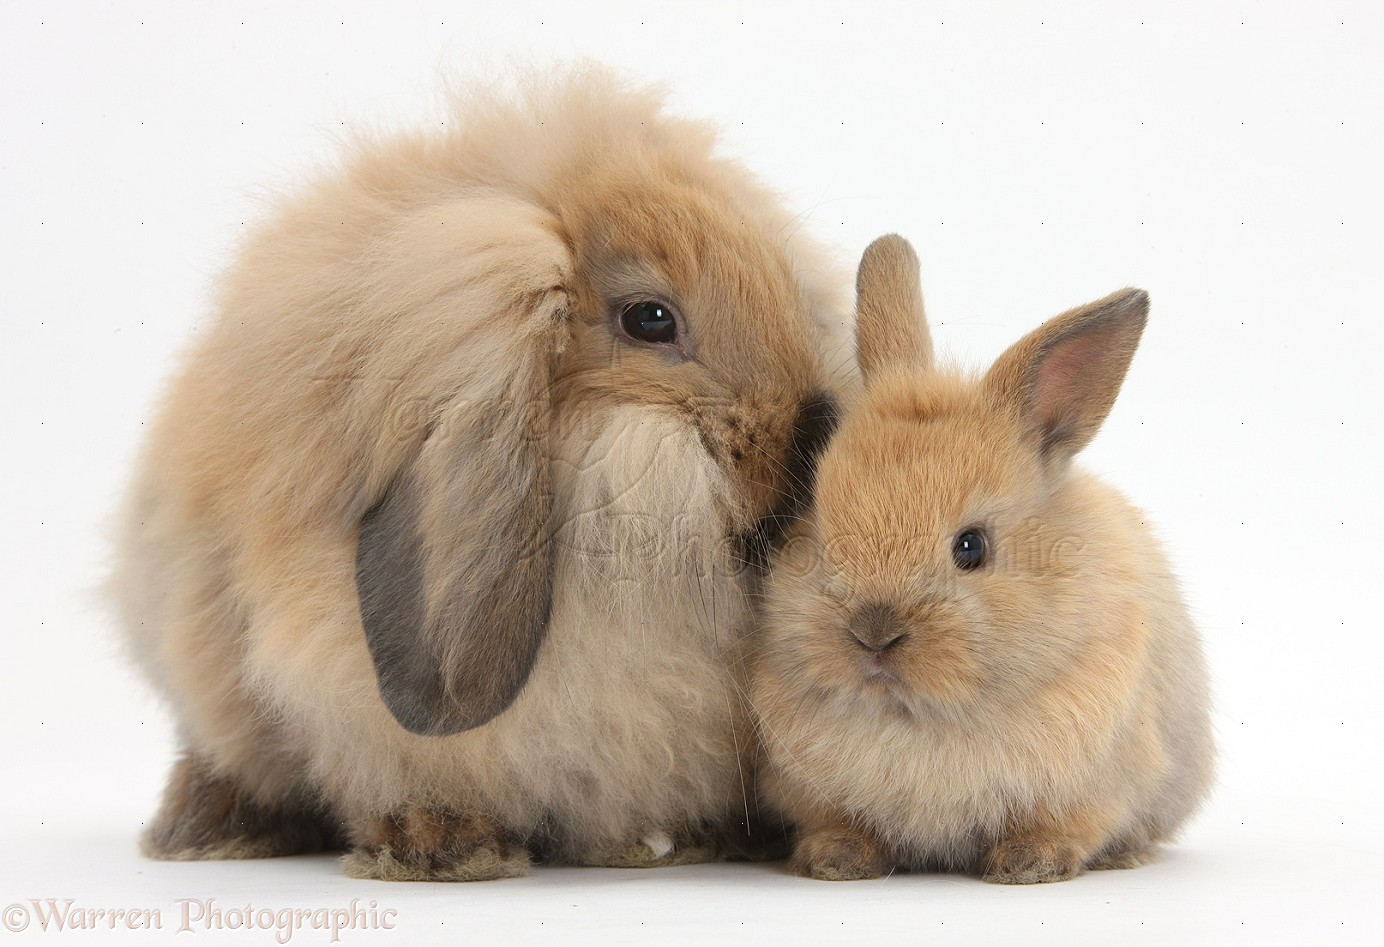 Fluffy Lionhead x Lop rabbit, and cute baby bunny photo ...